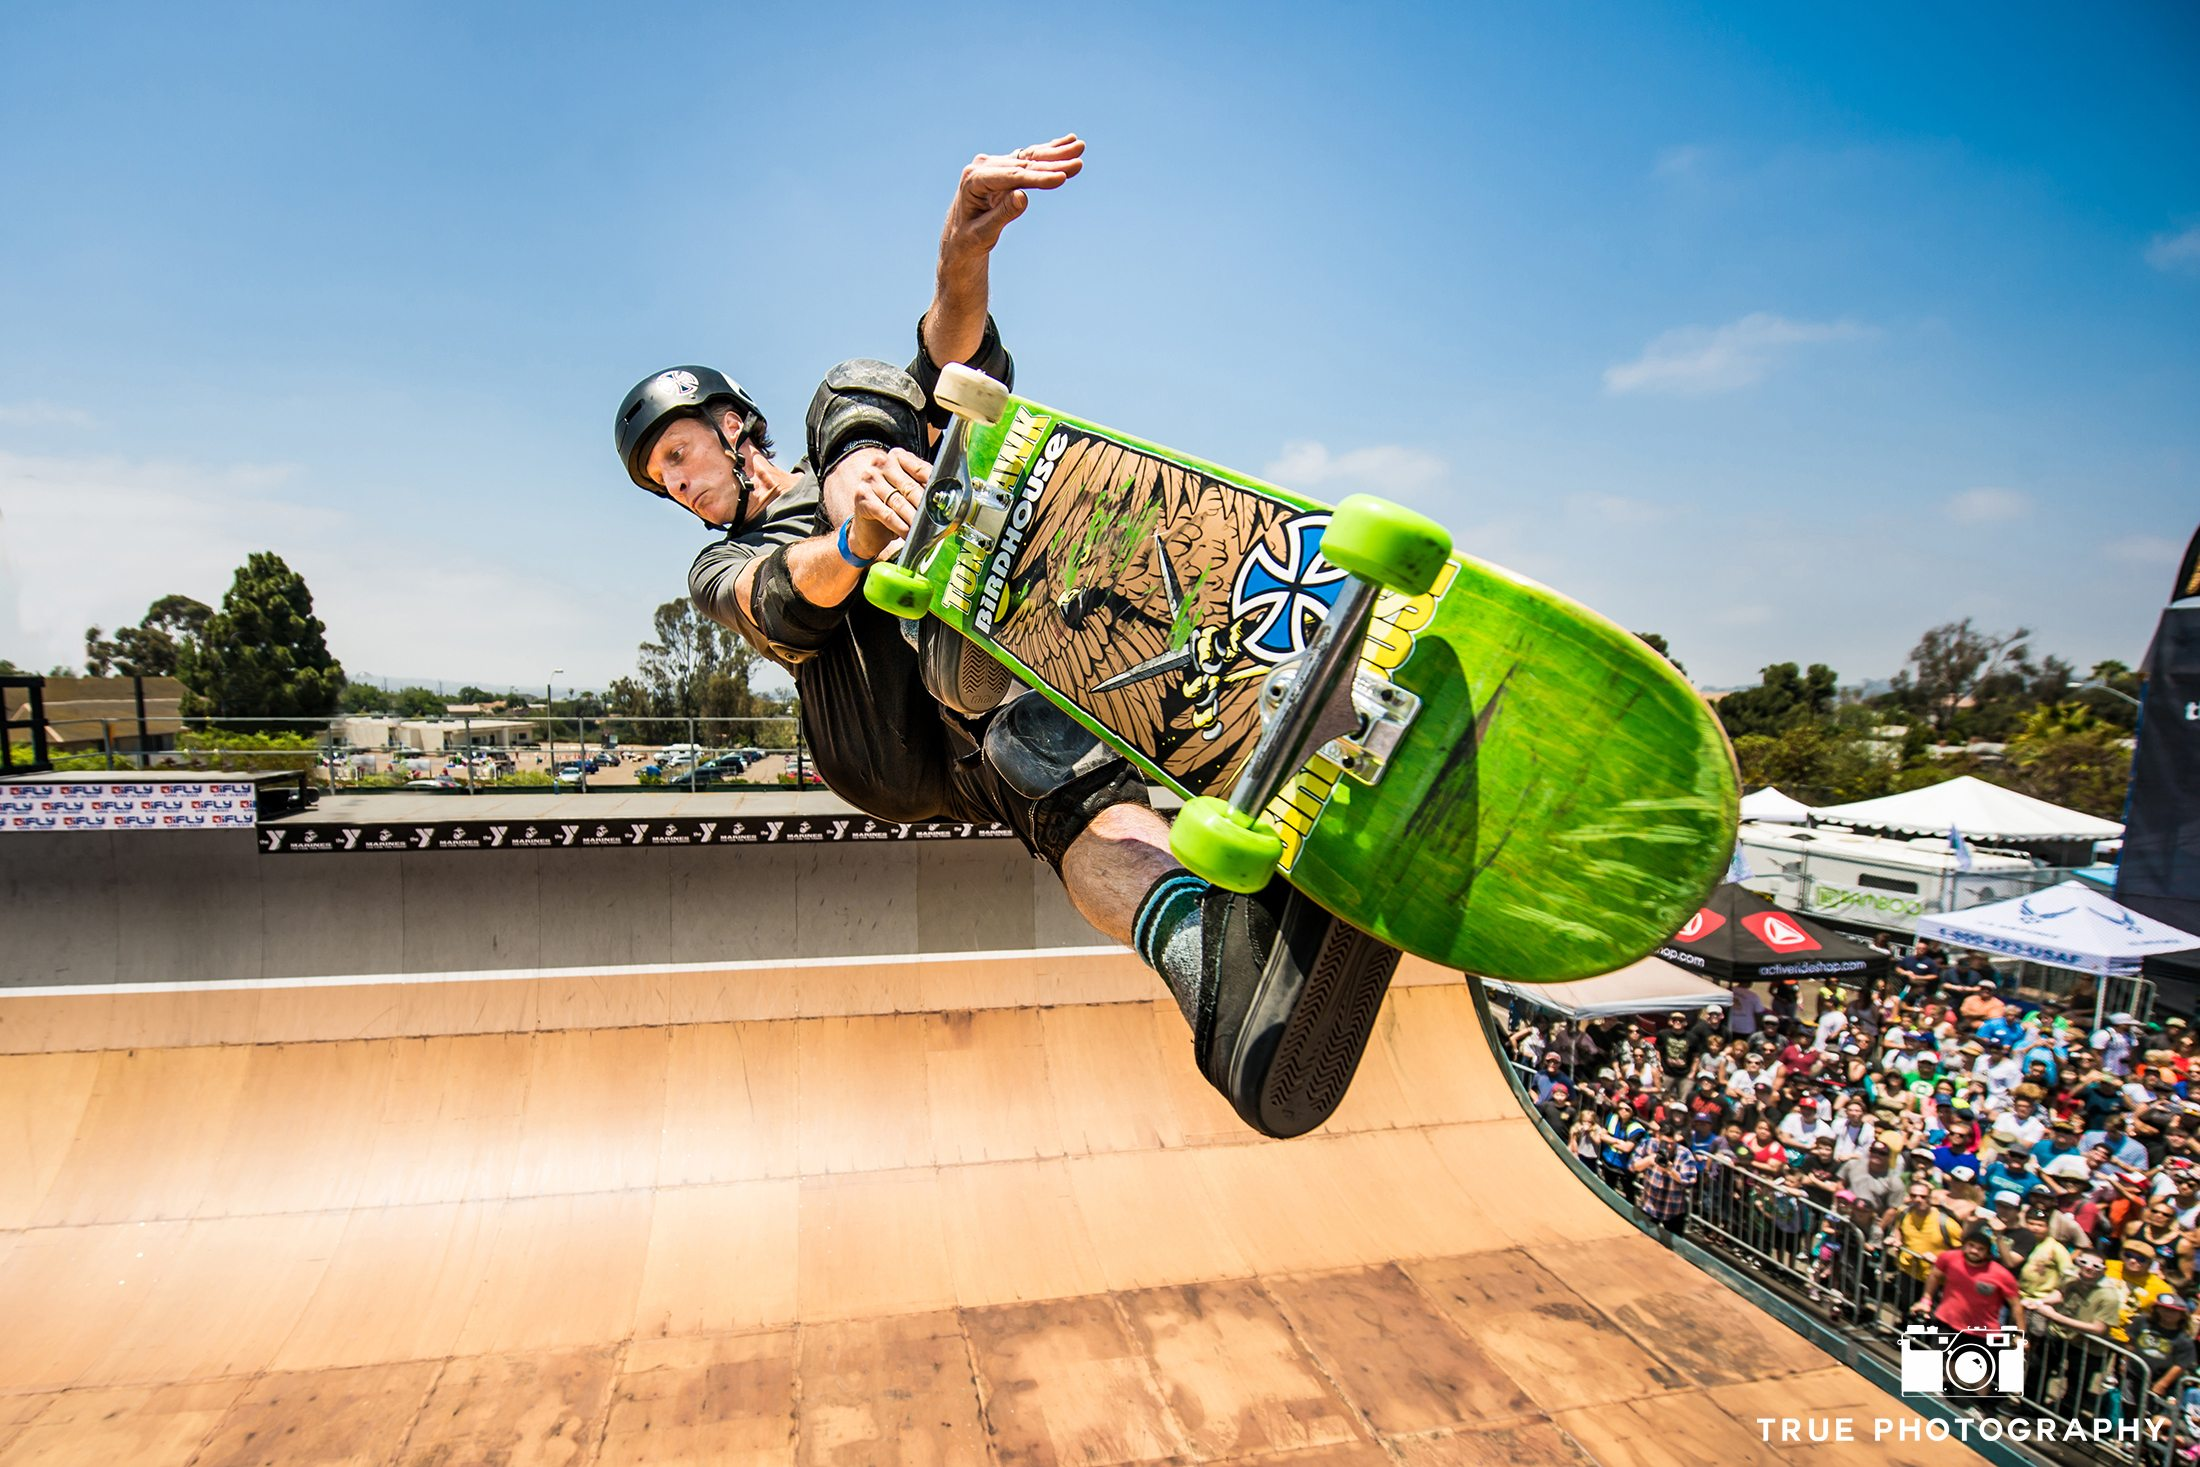 Tony Hawk Skateboarding Half Pipe San Diego Clash at Clairemont